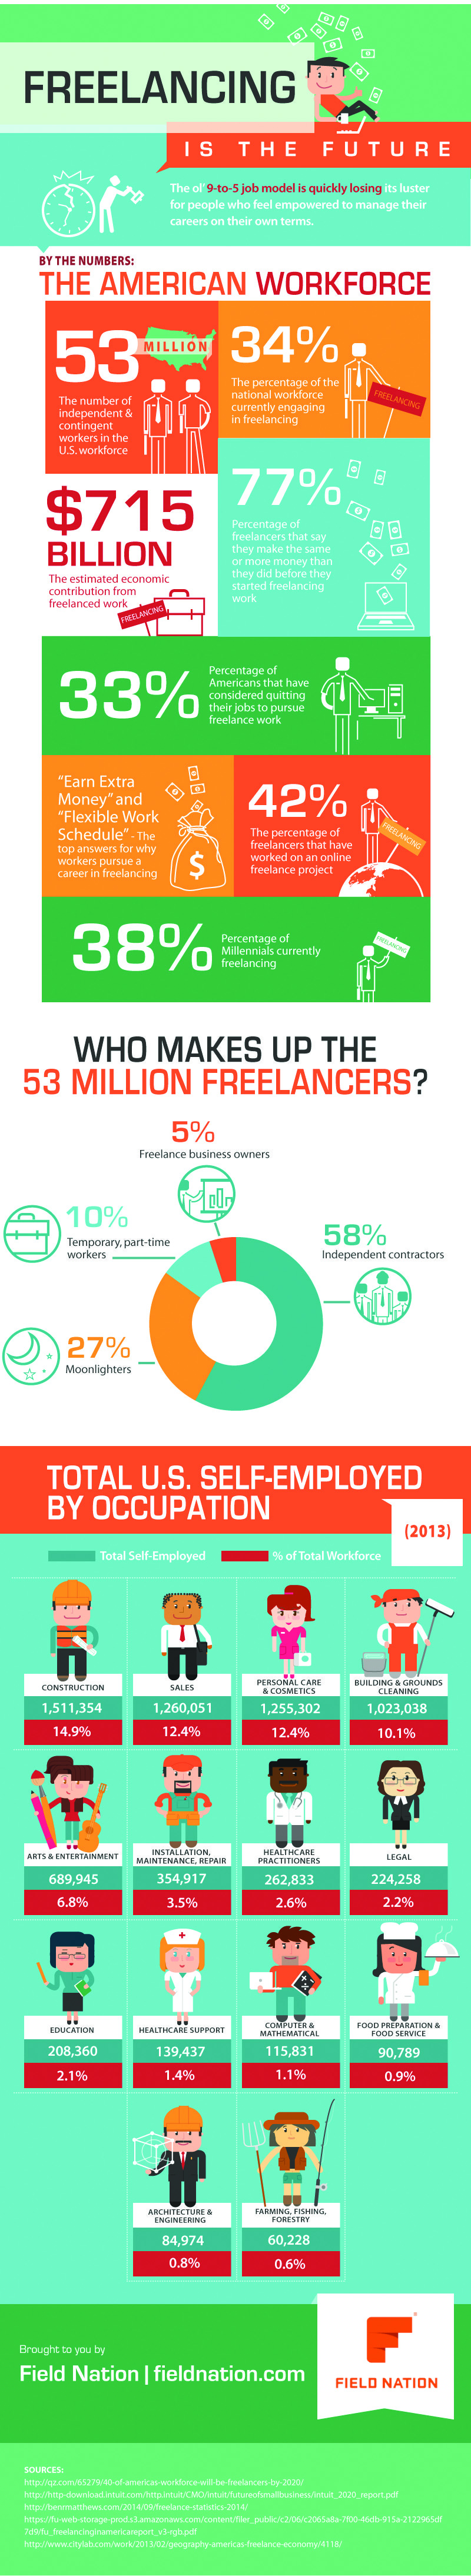 Freelancing-is-the-Future